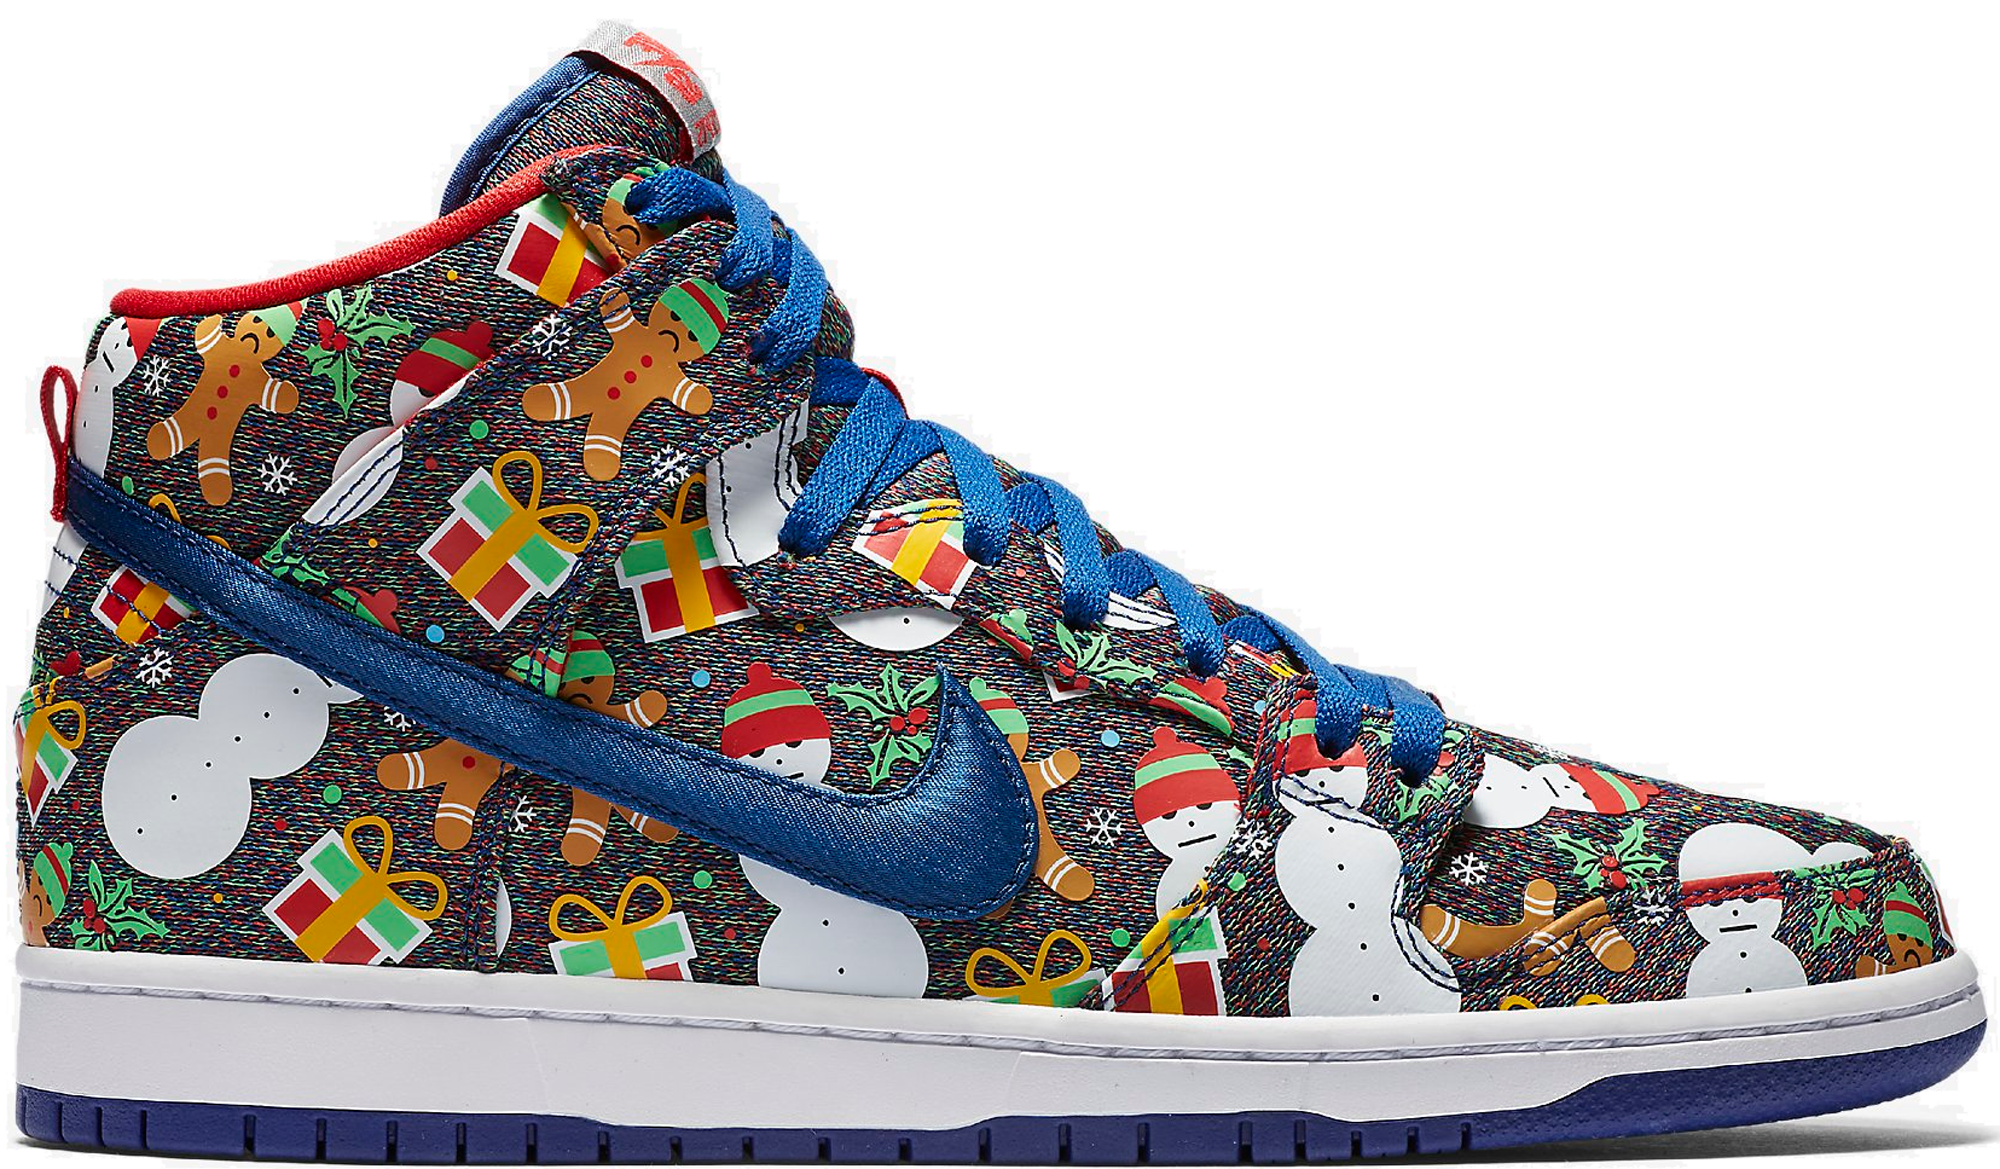 Concepts x Nike SB Dunk High Ugly Christmas Sweater (2017) - StockX News